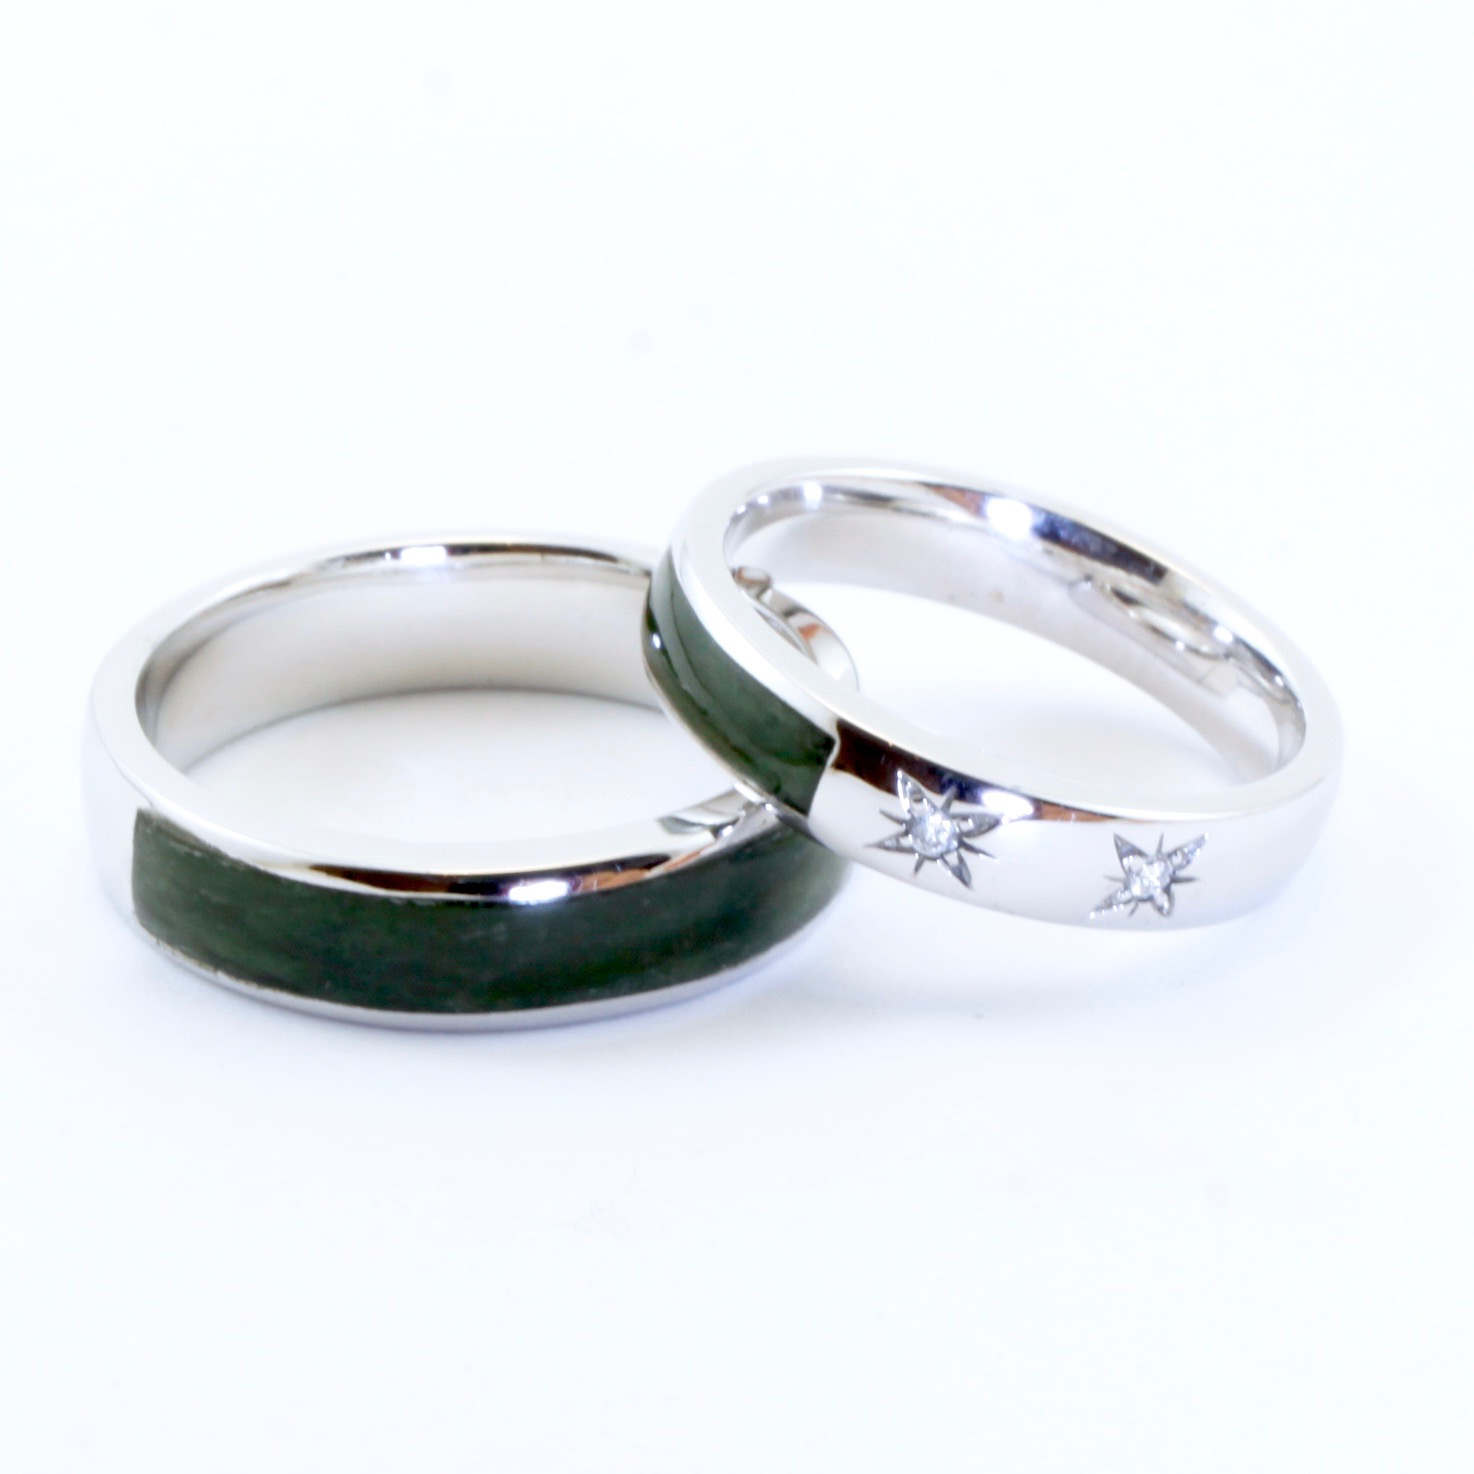 Greenstone Pounamu wedding rings